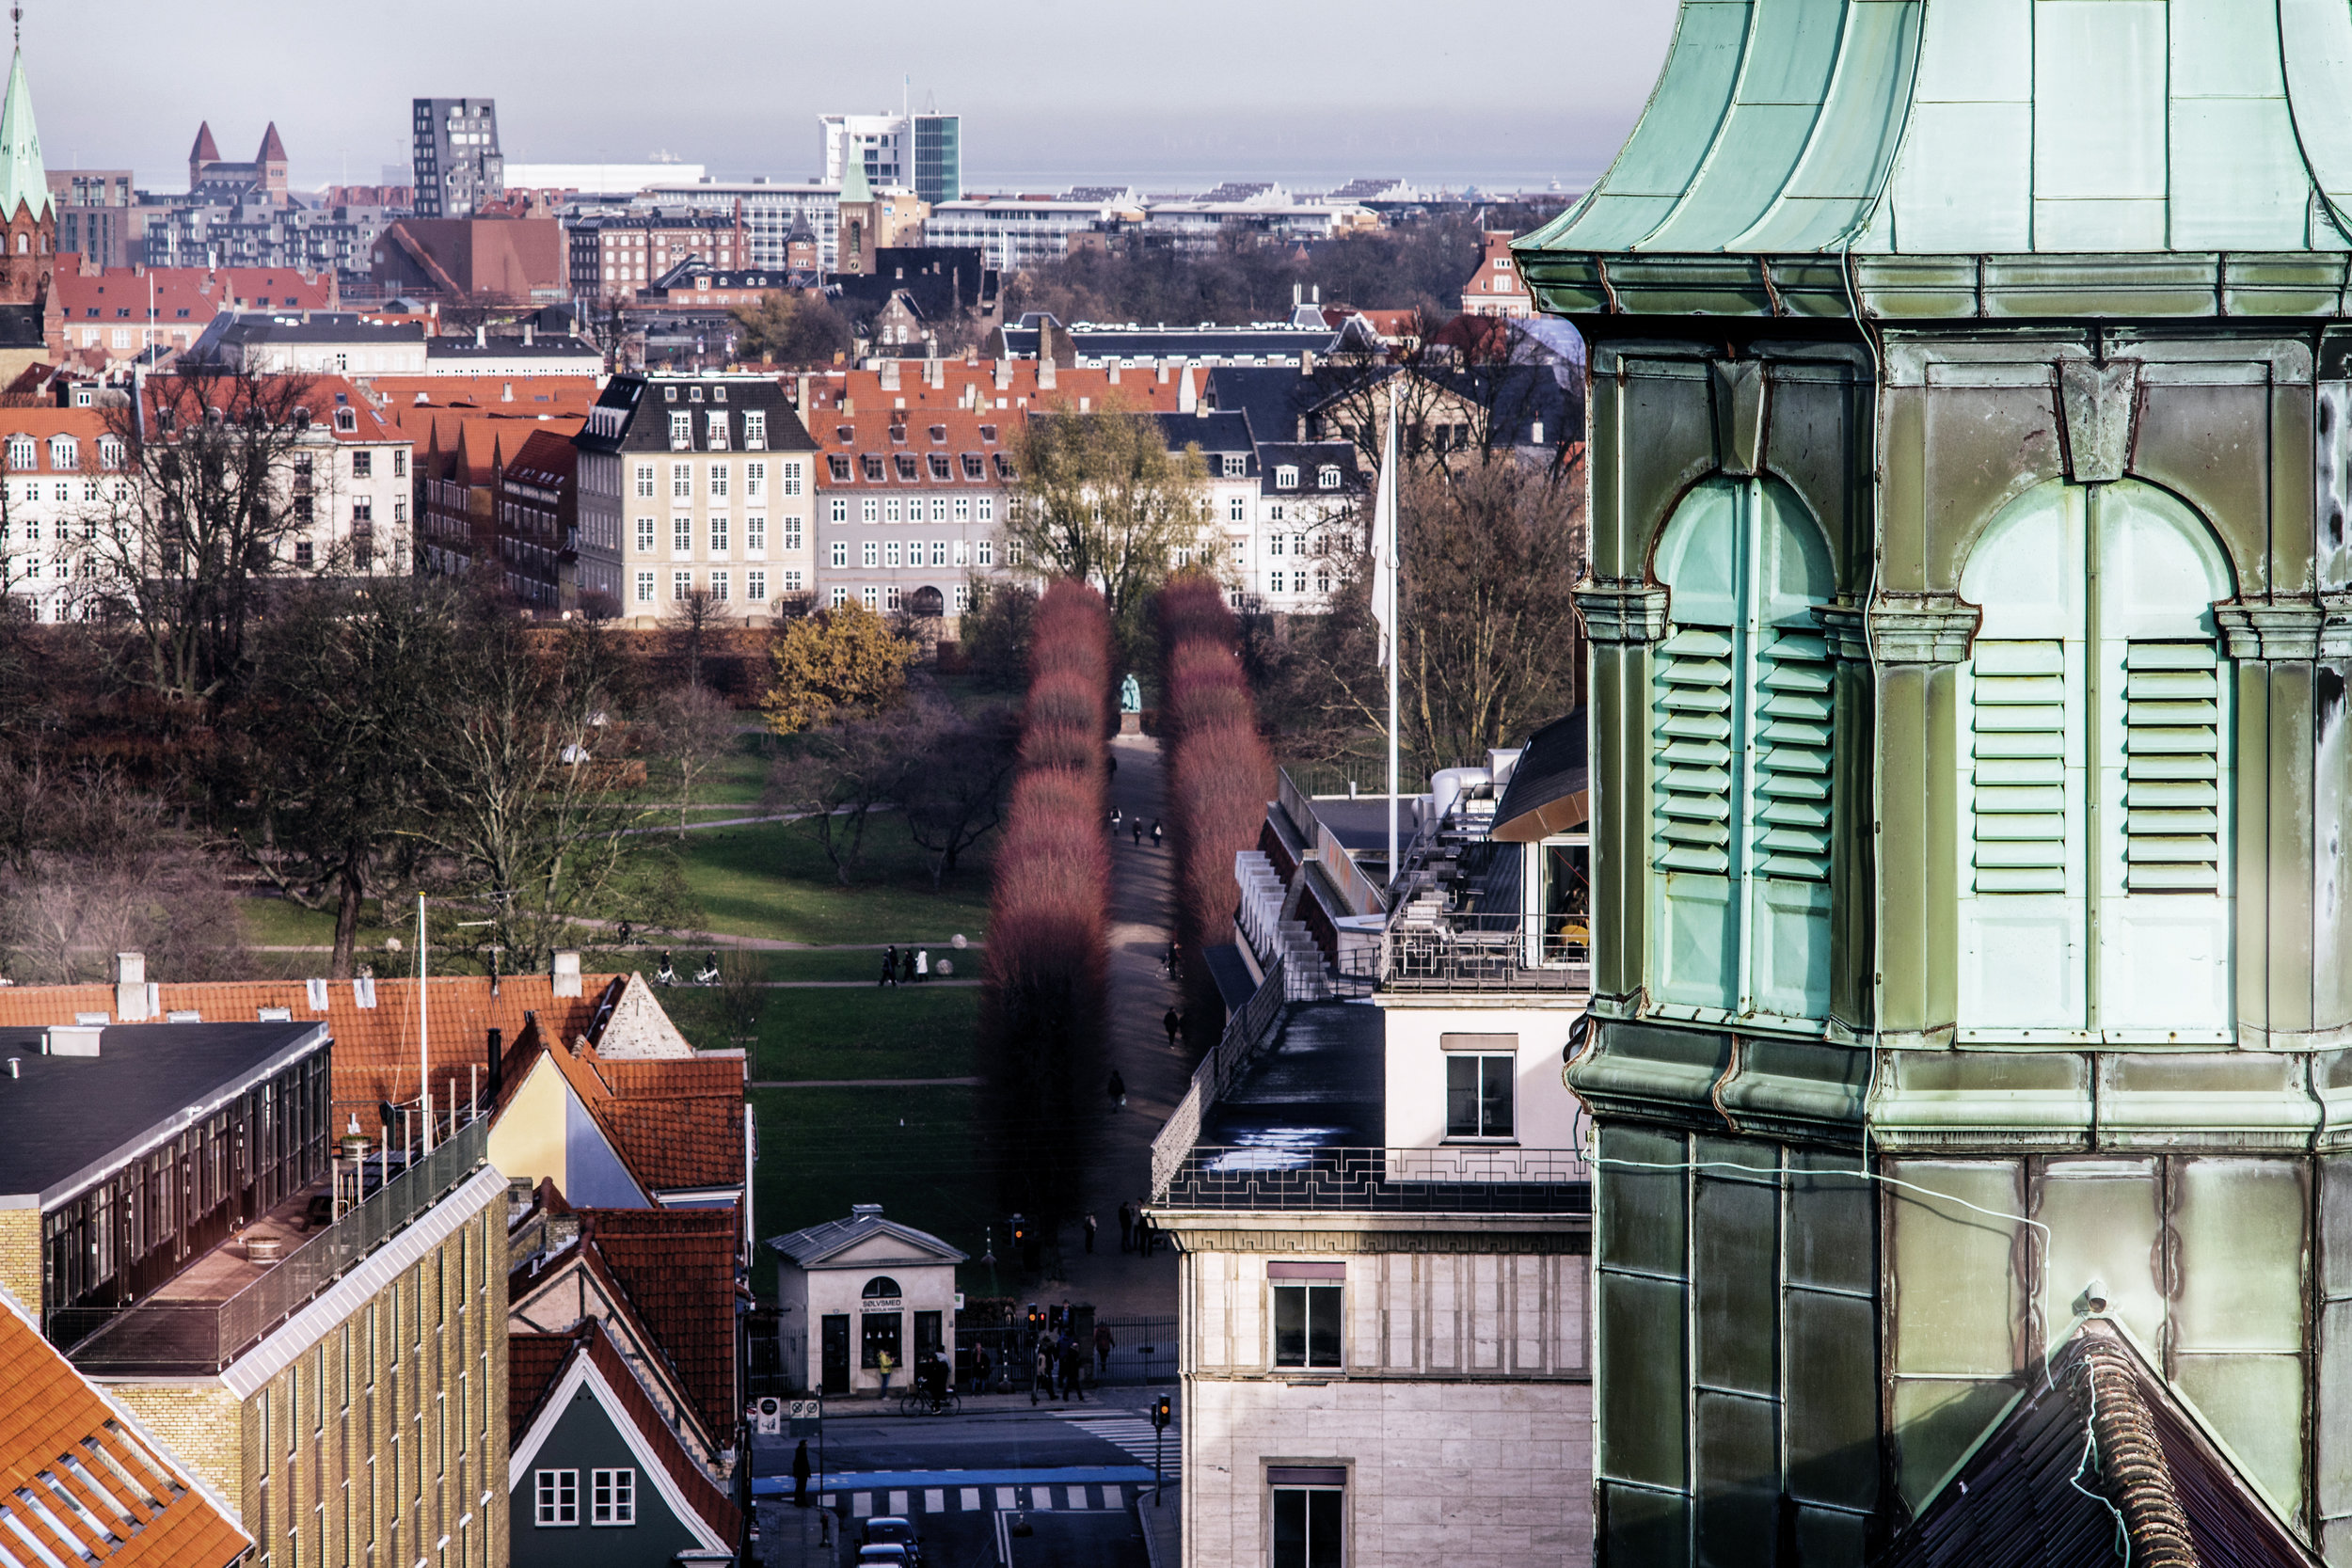 copenhagen. denmark. travel. adventure. europe. scandinavia. history. travelblog. looking over the city.jpg